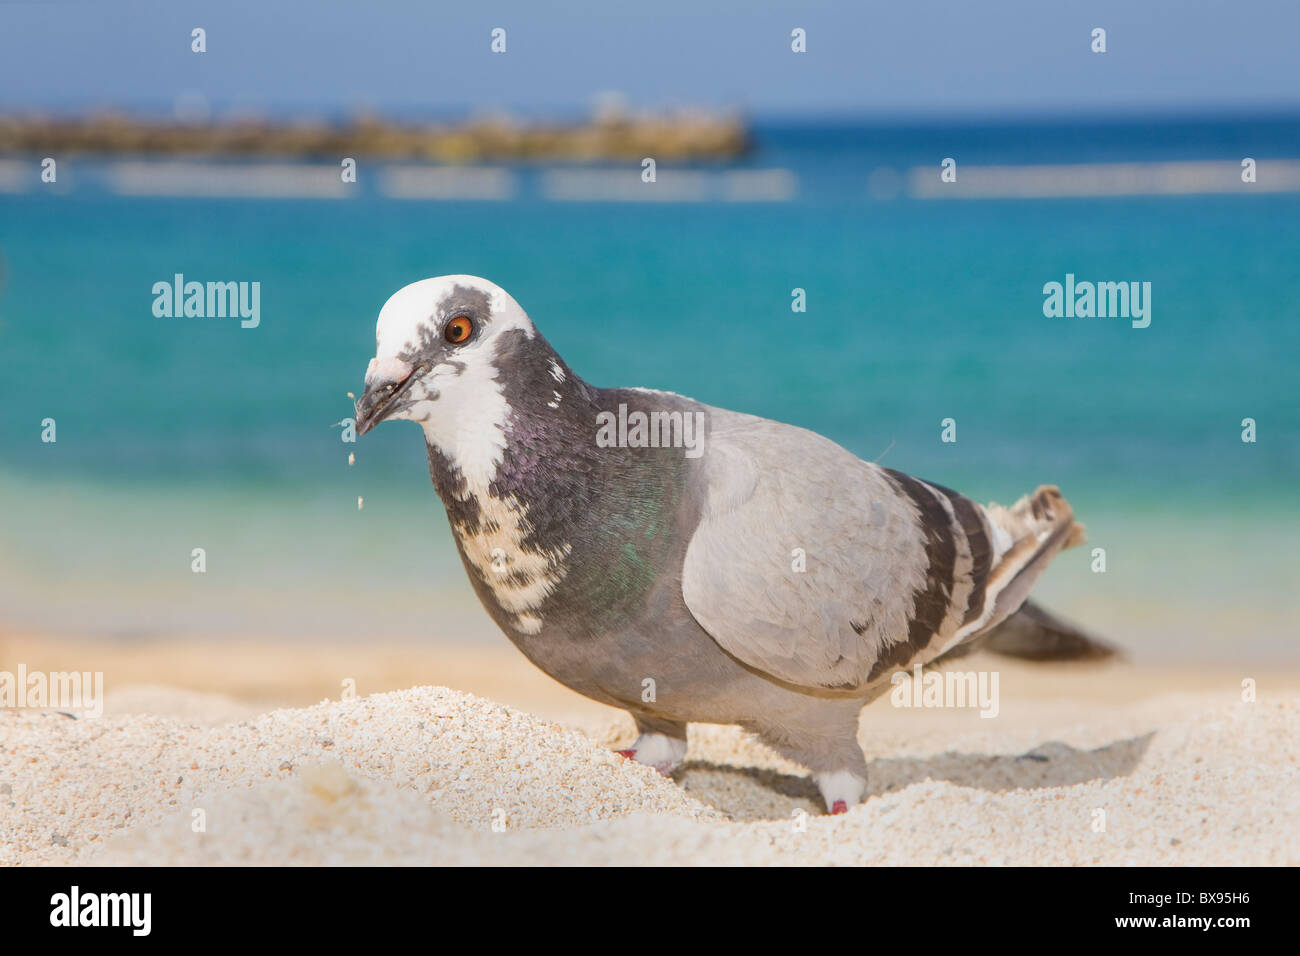 Pigeon on the beach - Stock Image